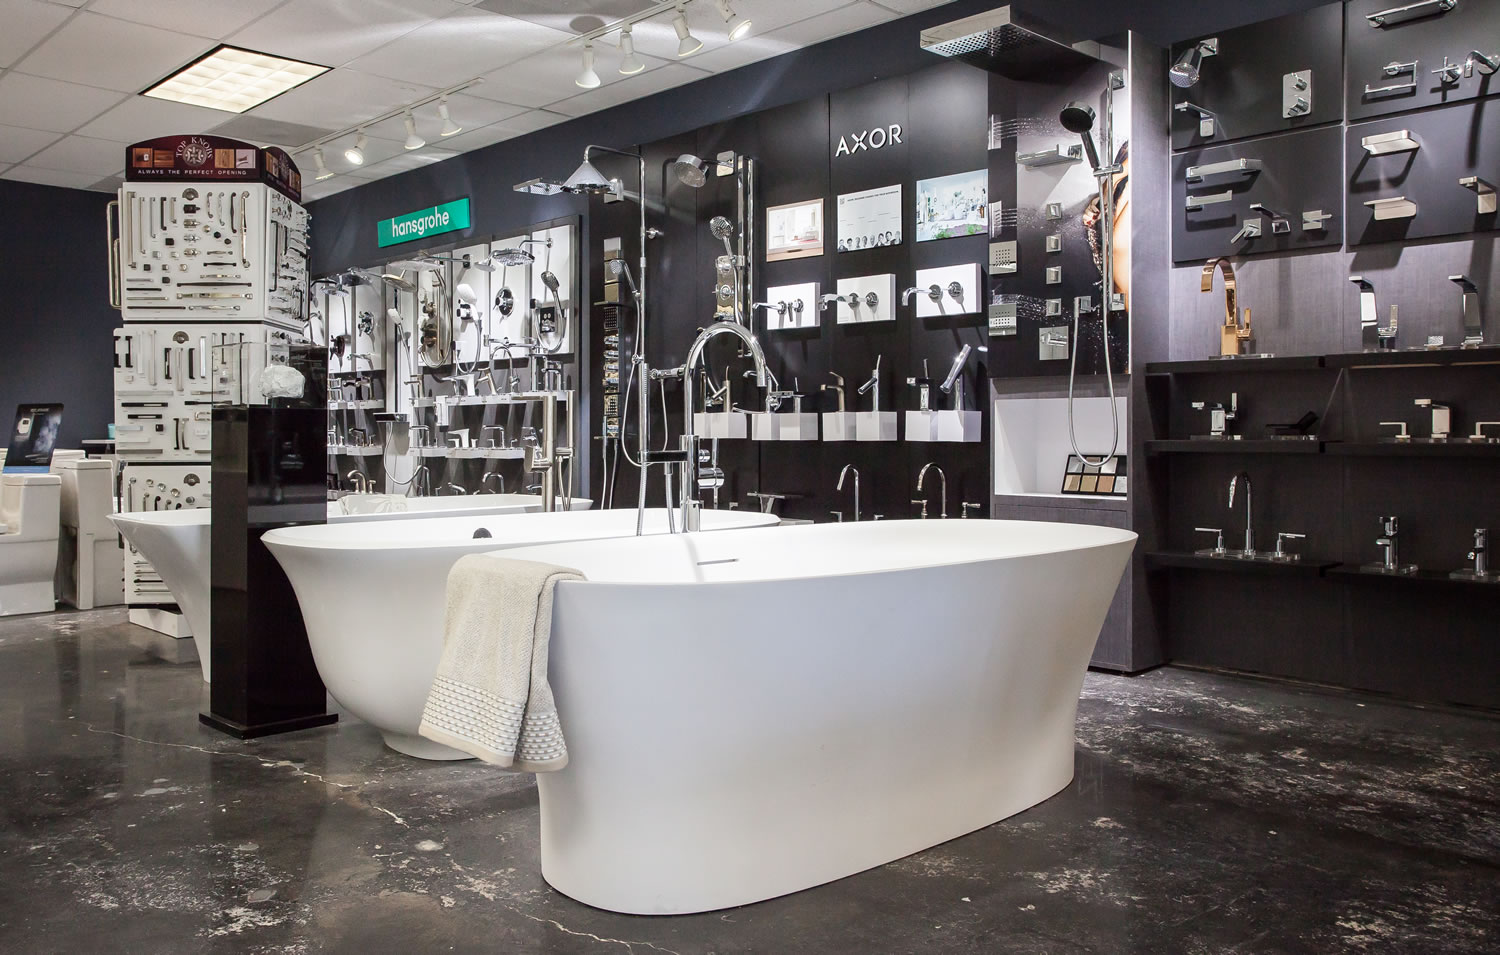 Charmant Our Design Consultants Are Ready To Assist You On Your Next Project. We  Look Forward To Serving You! Kohler_small Distributor Of The Year. Bathroom  Products